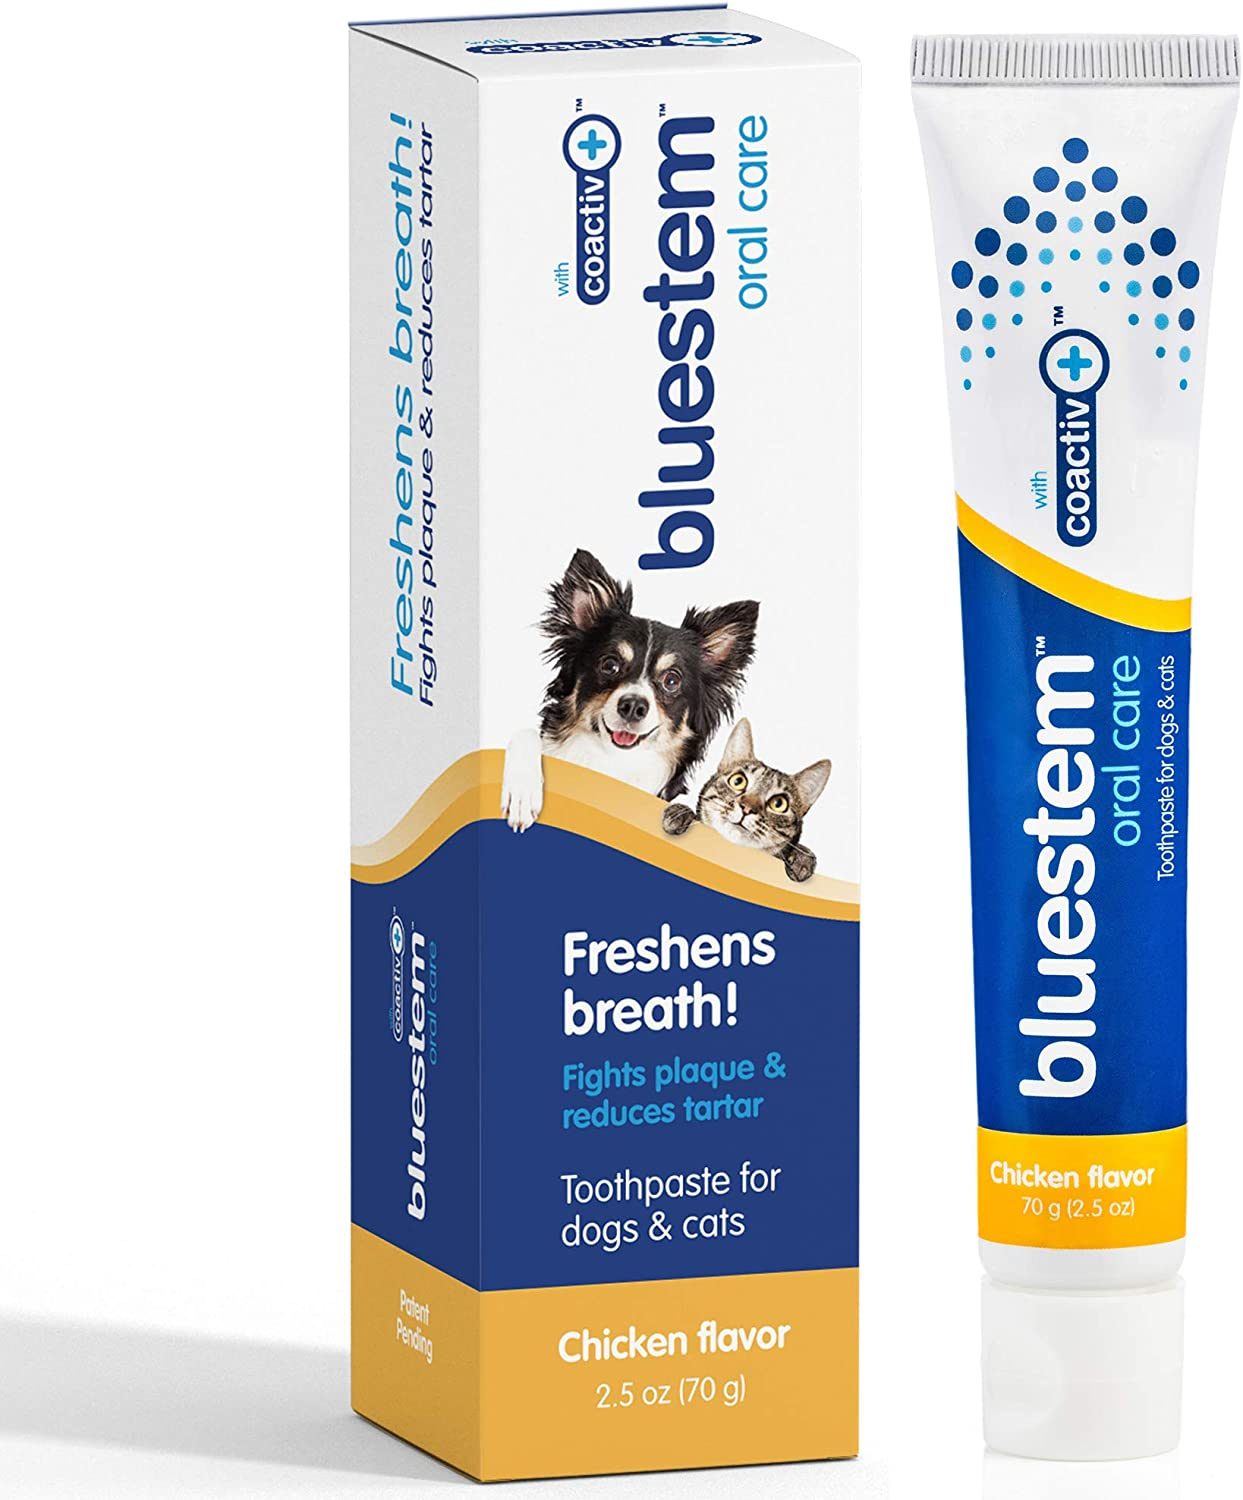 Dog Toothpaste : Dog & Cat Dental Care Tooth Paste Promotes Fresh Breath Teeth Brushing Cleaner Pet Breath Freshener Oral Care Dental Cleaning Kit. Tartar & Plaque Remover Toothbrush